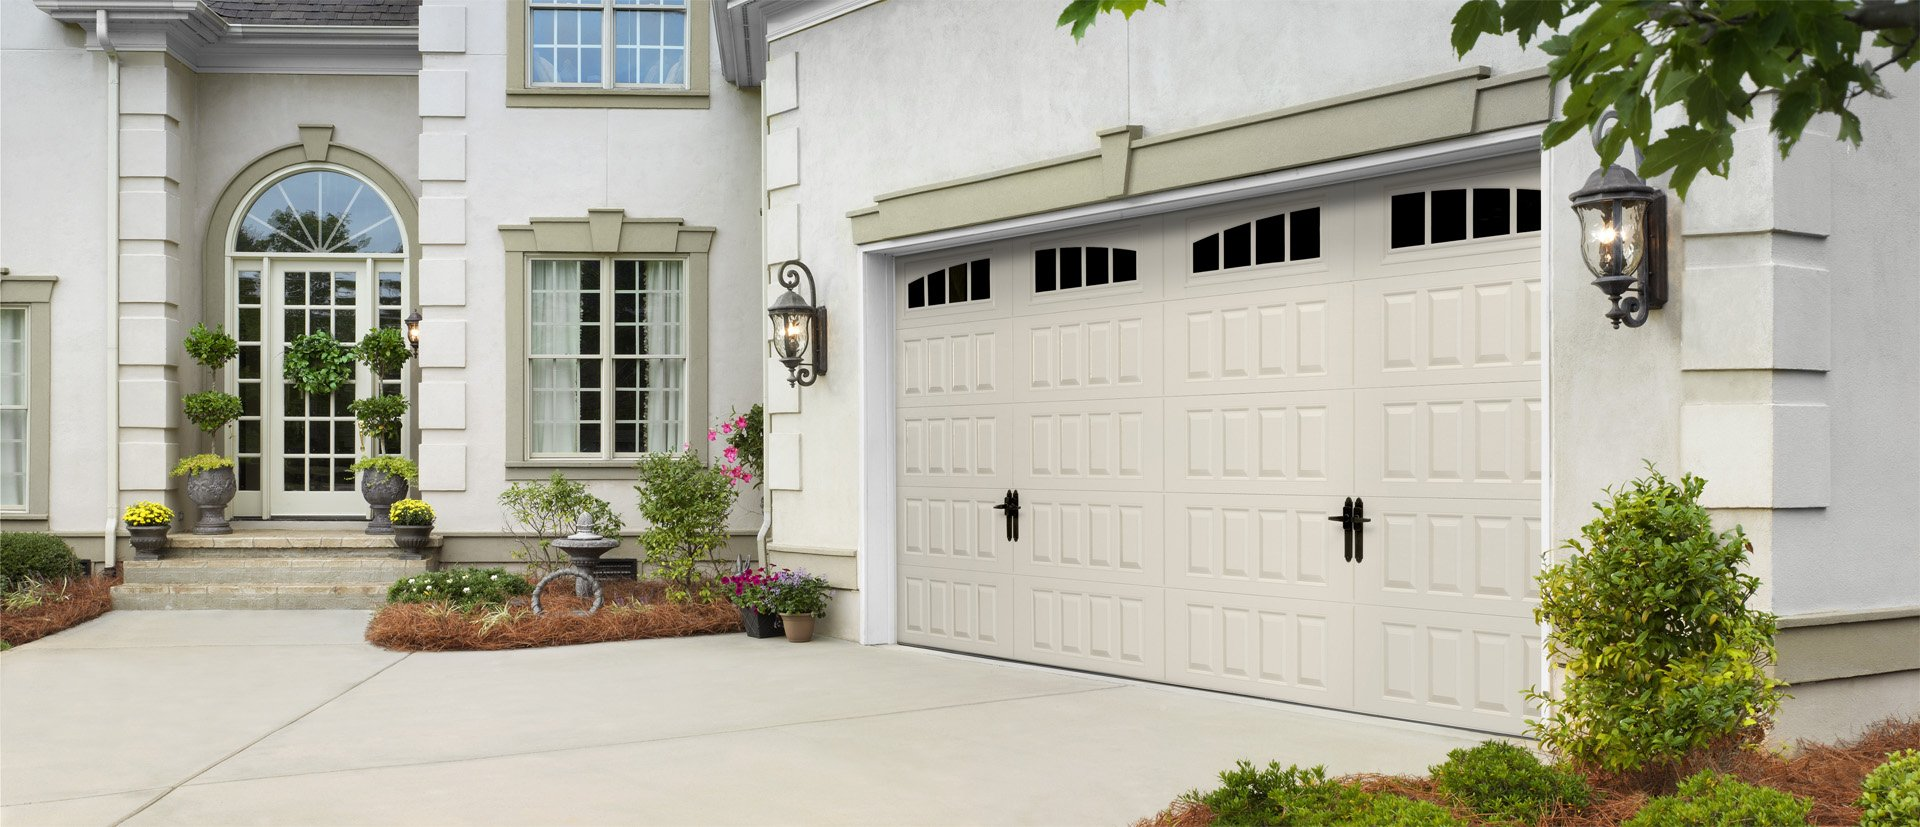 Charmant Garage, Overhead Door Repair Company Central Jersey U2013 NJ Door Master